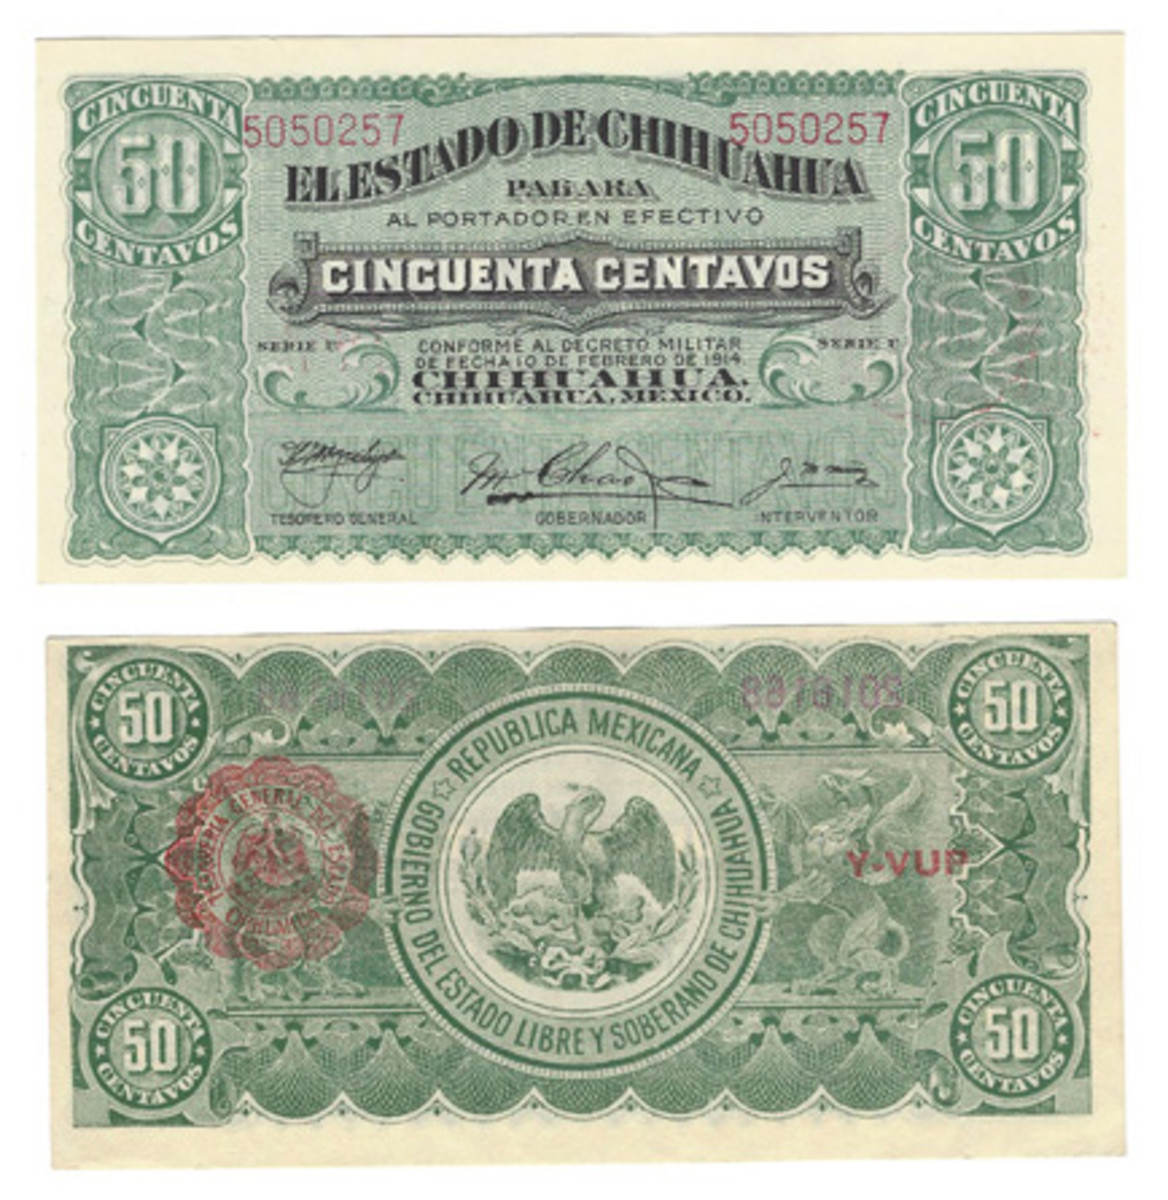 The face of the second 50 centavos variety has nothing but a usual serial number, no items added. But the back now has a red seal at left and red letters on the right. No date appears on the back.